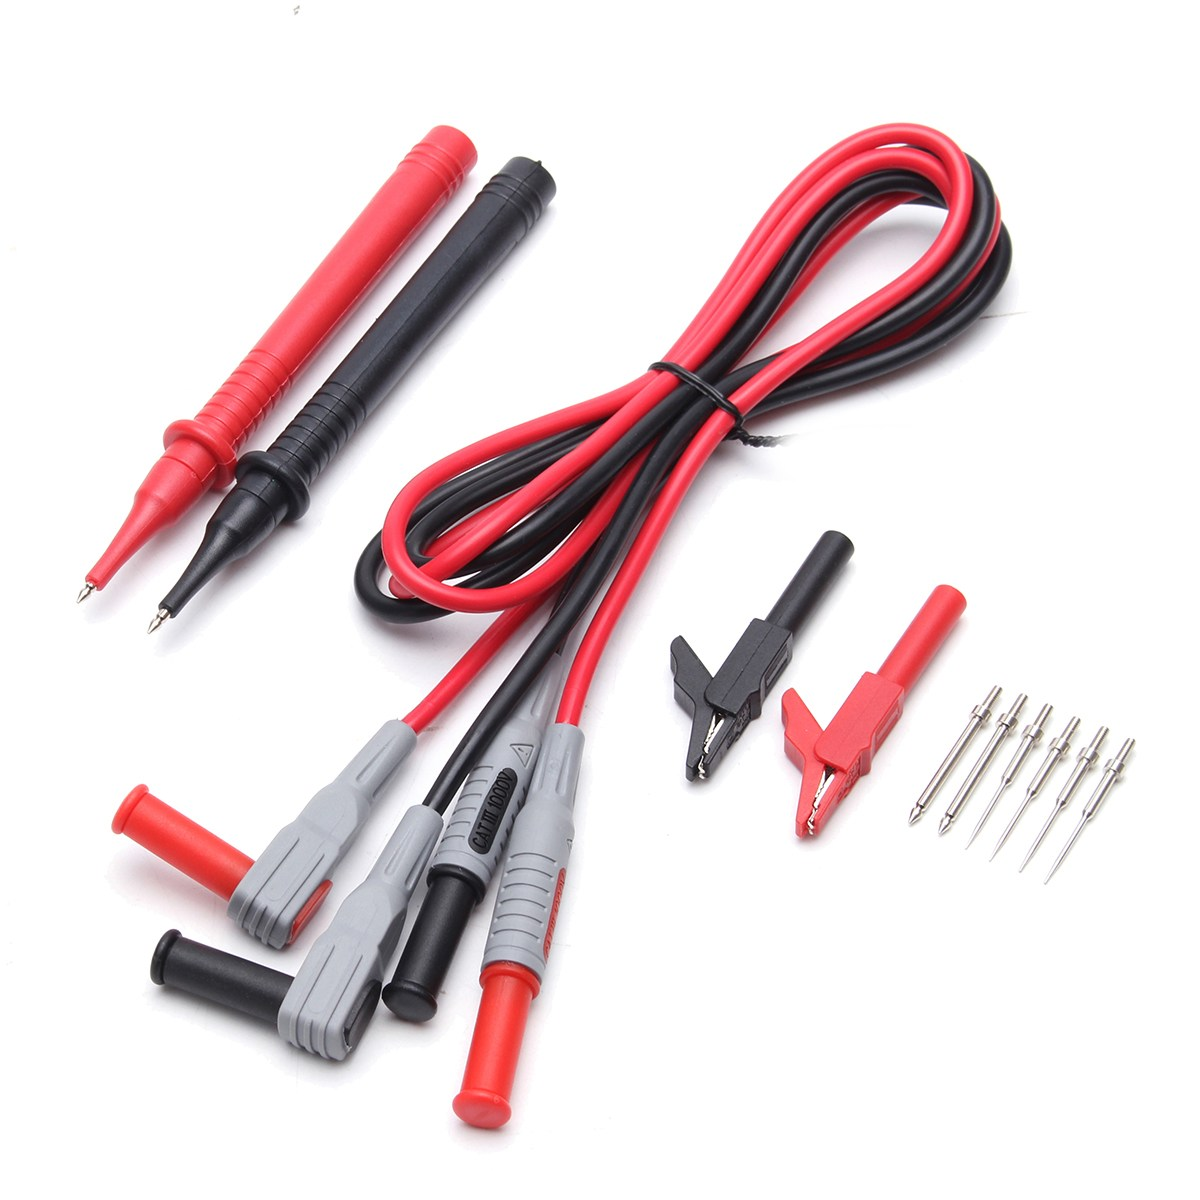 P1300B 12 In 1 Super Multimeter Probe Replaceable Probe Clamp Meter Test Lead Kits + Alligator Clips